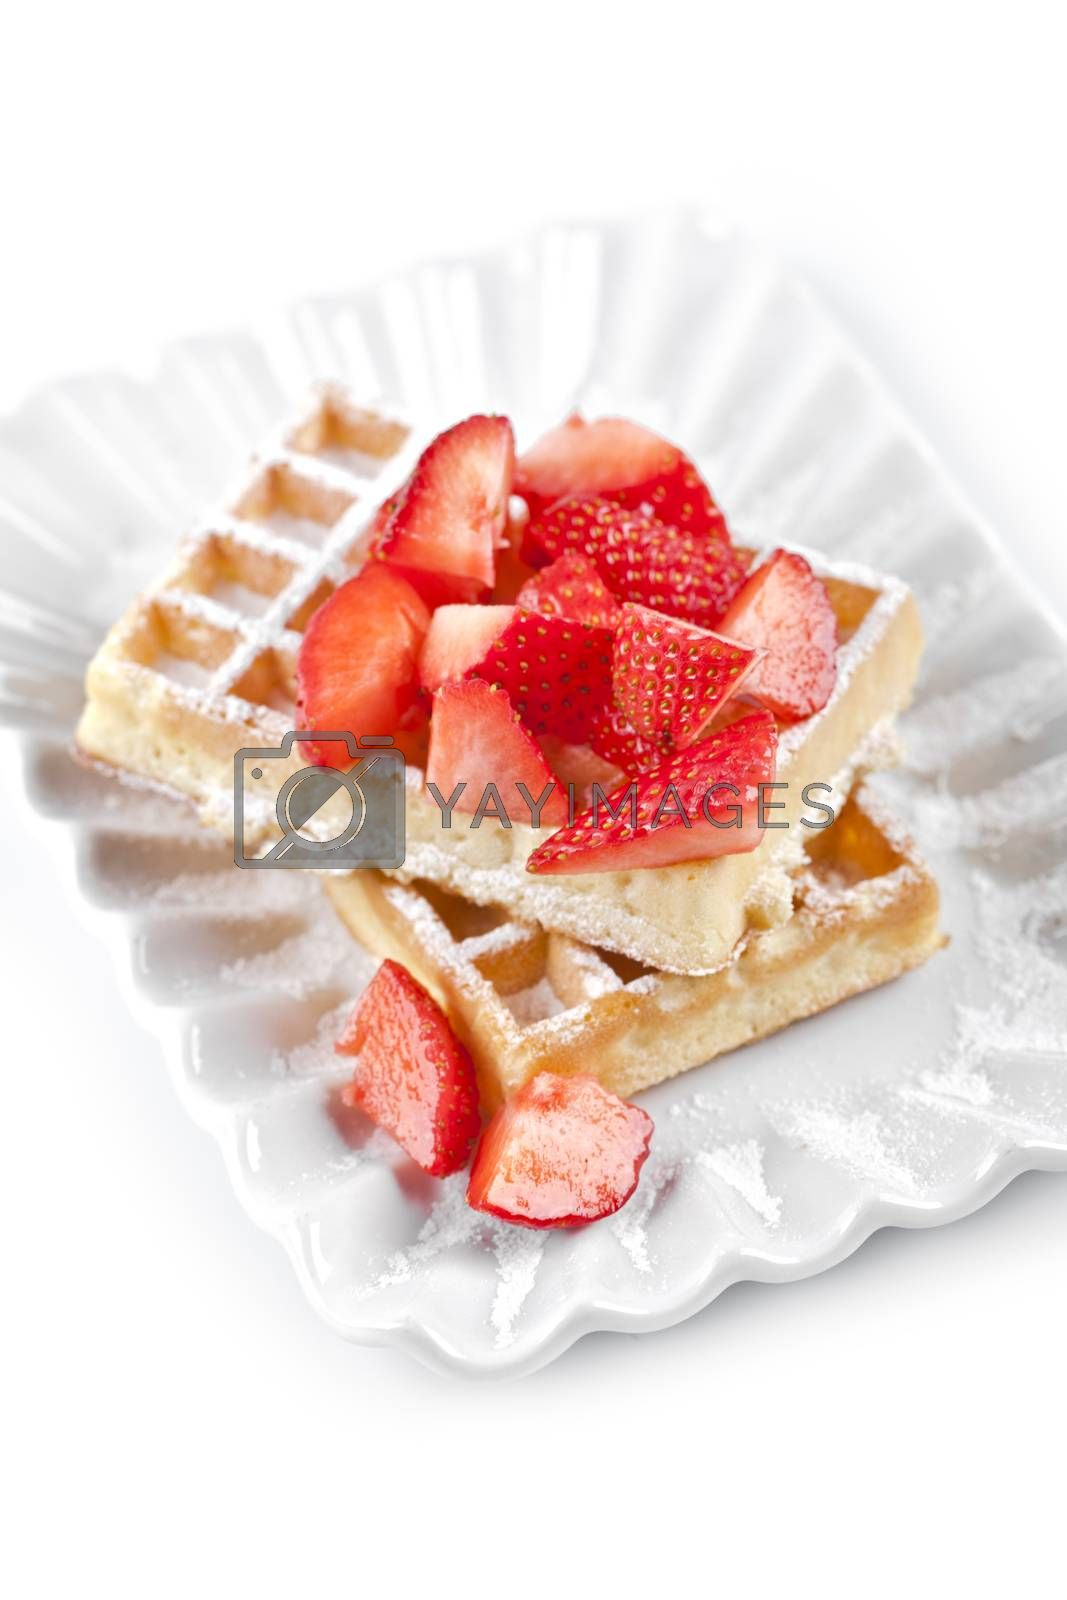 Belgium waffers with sugar powder and strawberries on ceramic plate on white table. Fresh baked wafers.